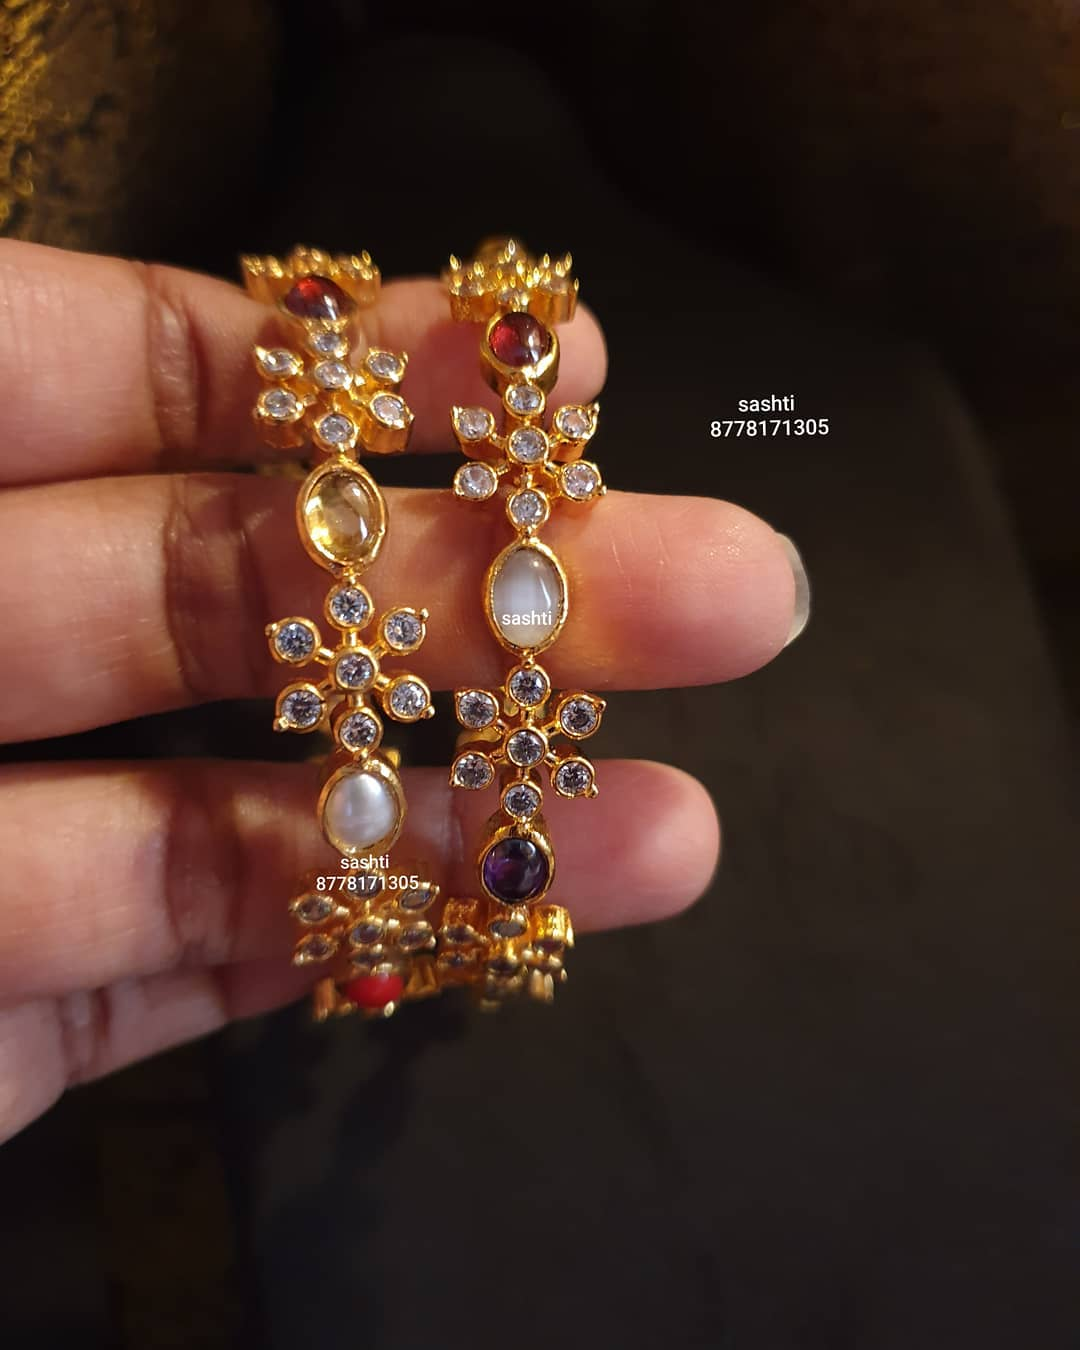 Gorgeous silver bangles studded with multi color stones and navaratan stones. bangles with gold polish. 2021-01-03